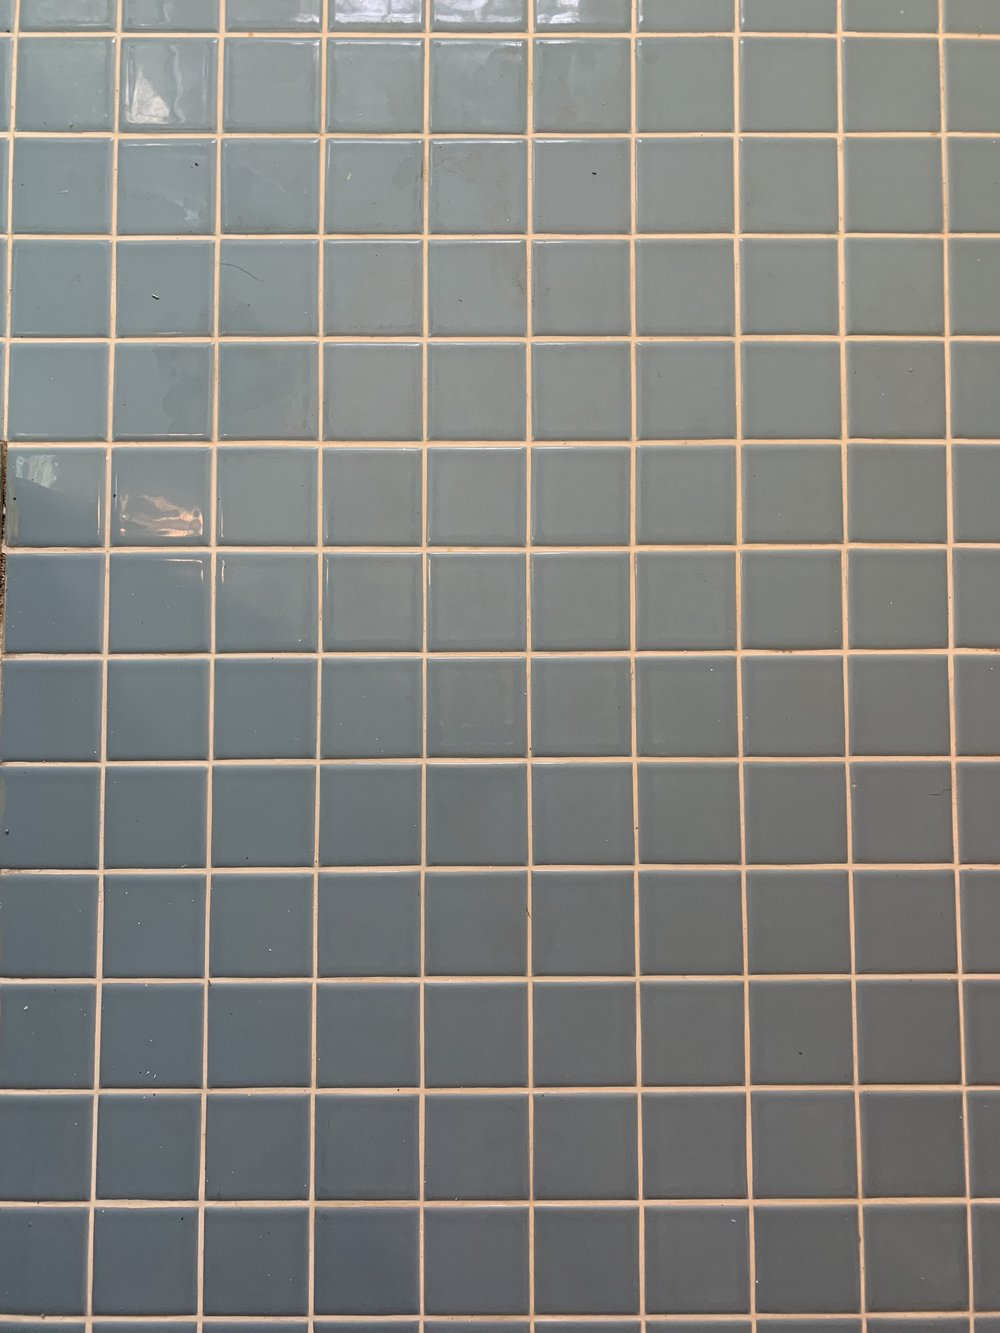 Scrubbing the grout and original tiles of the #drummondfliphouse